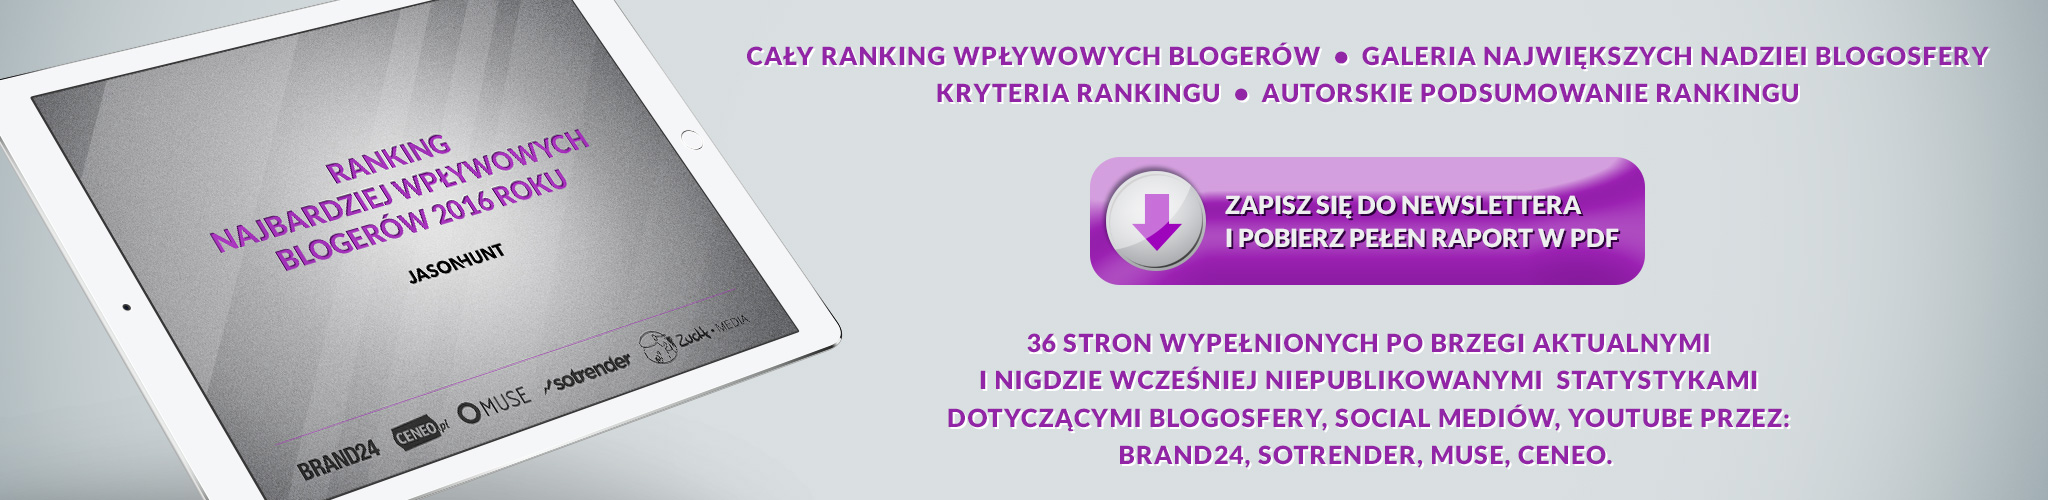 jh_ranking_banner